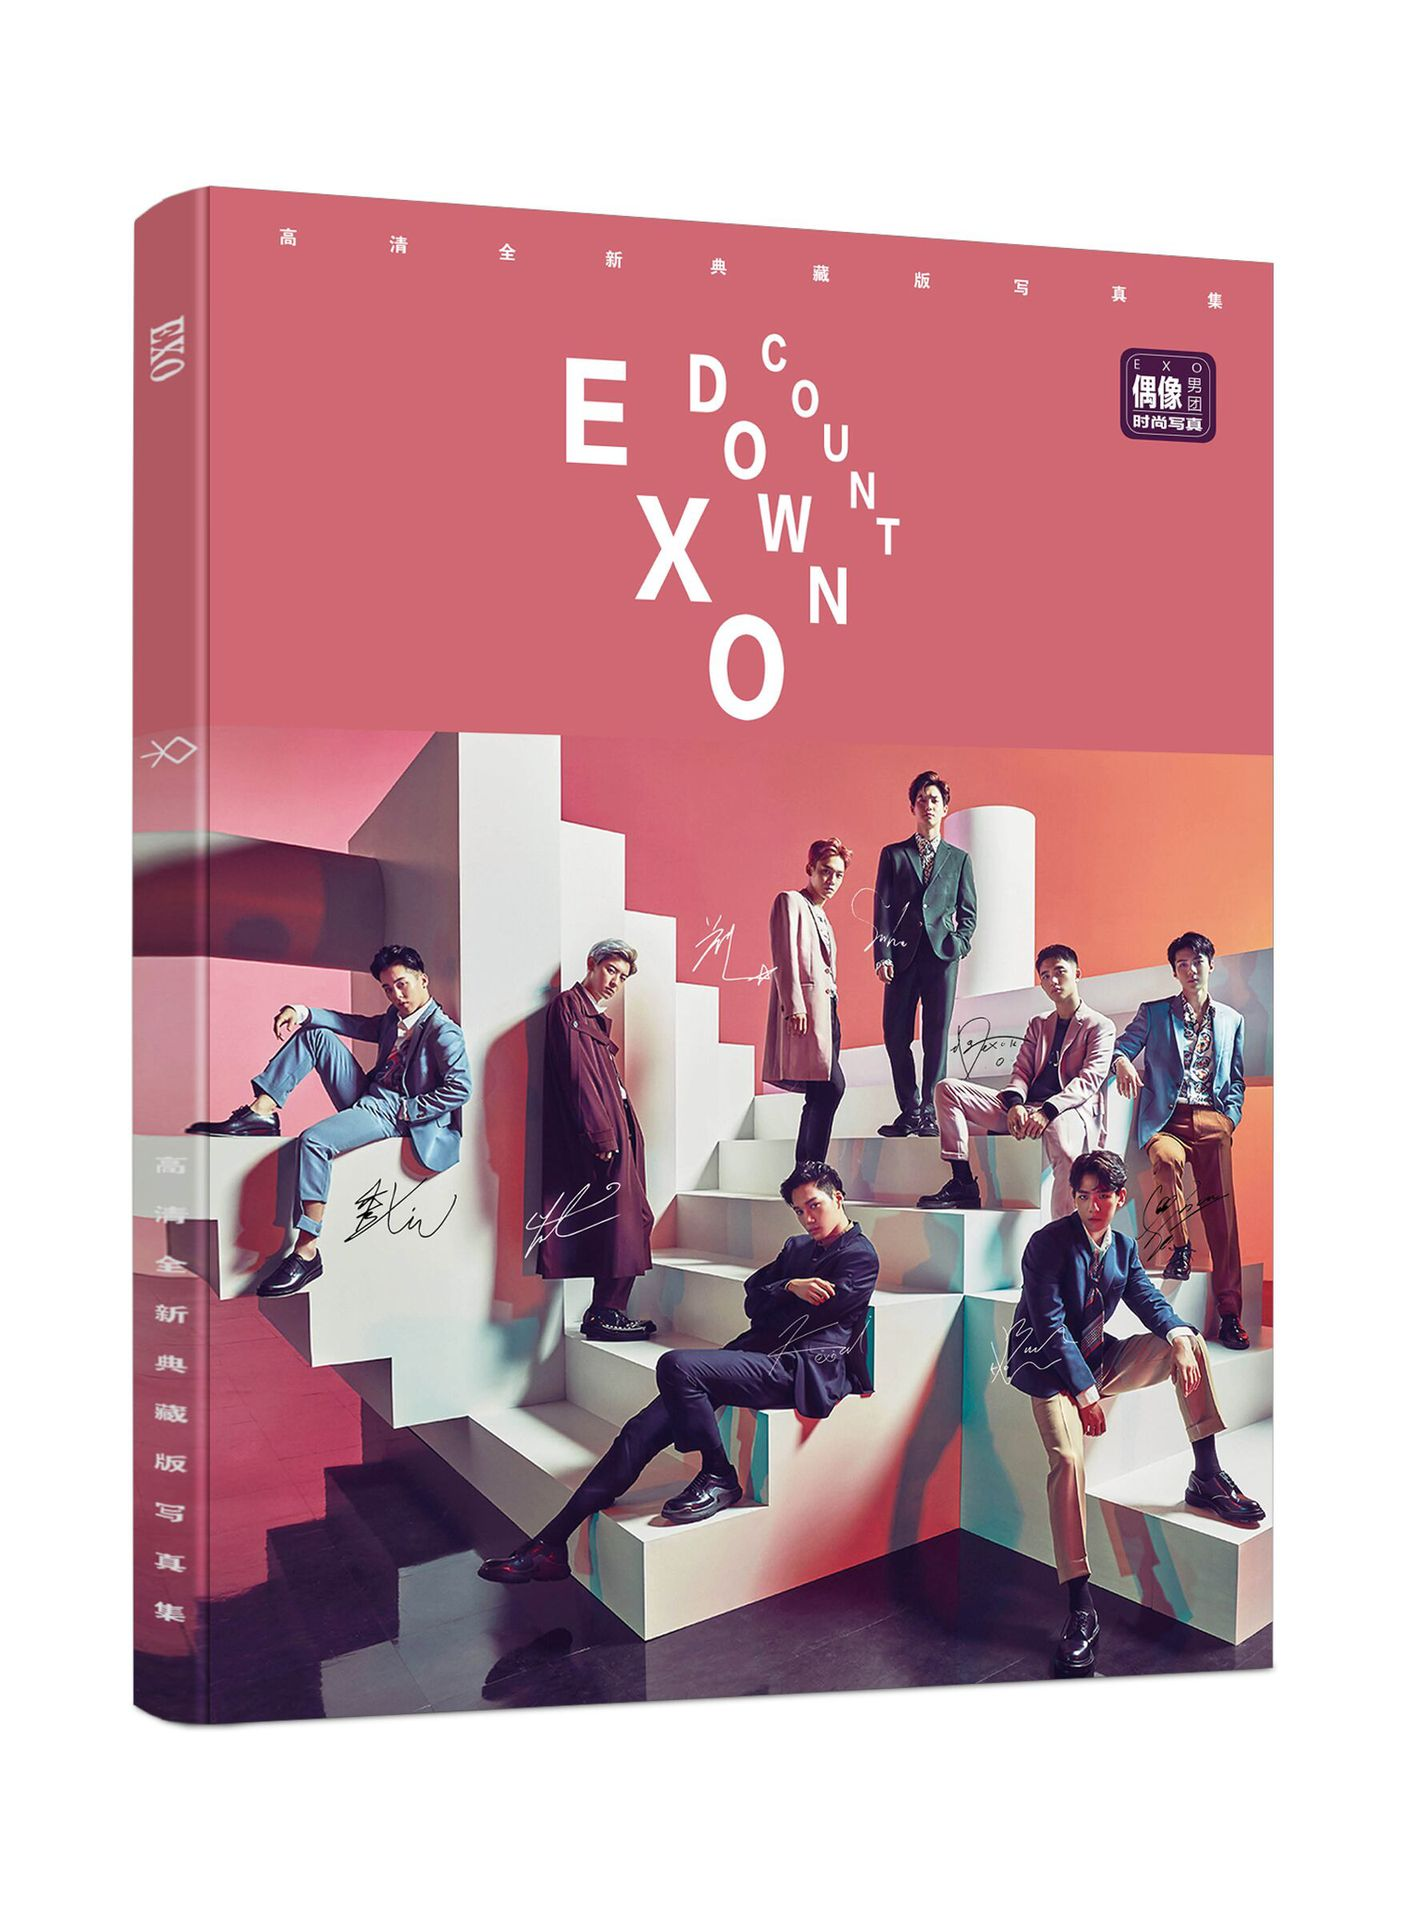 Costumes & Accessories Kpop Exo Poker Playing Cards Xiumin Suho Kai Chanyeol Sehun Lay Baekhyun Fanart Pictures Art Book Props Gifts Collection New